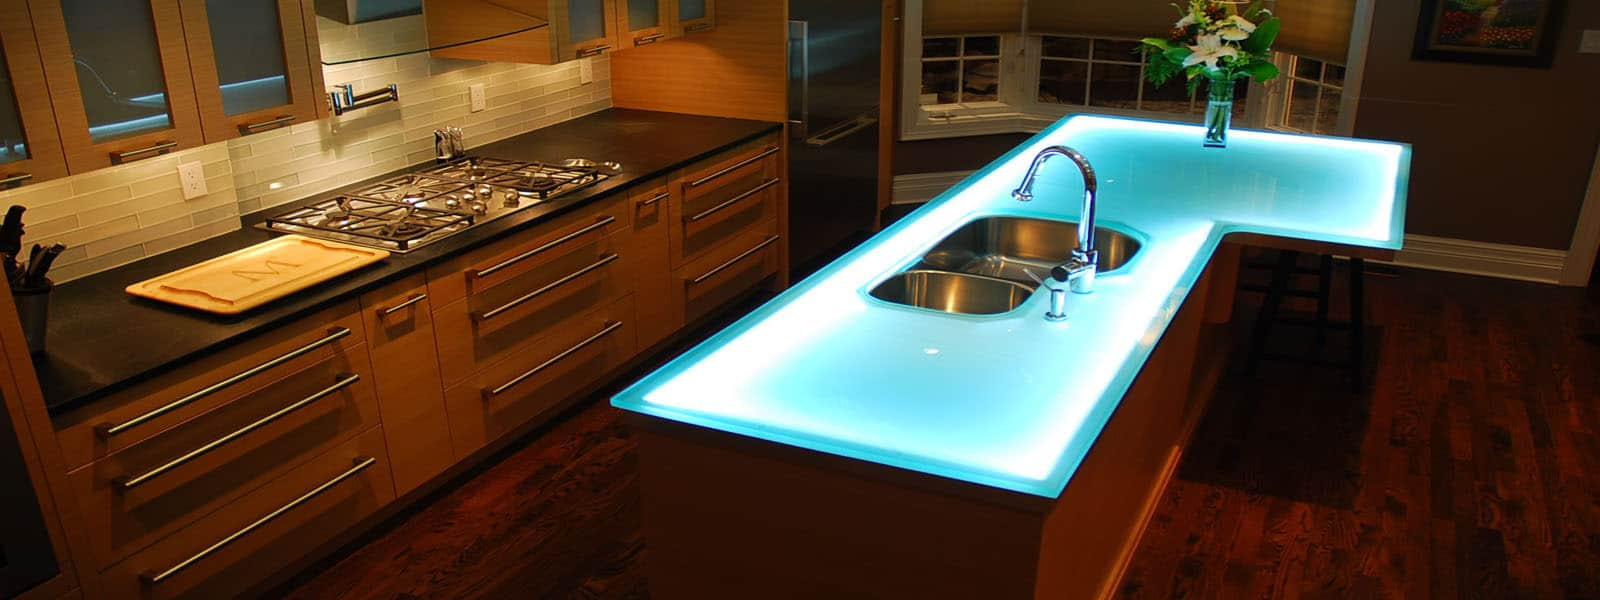 modern kitchen countertops from unusual materials kitchen countertop ideas View in gallery modern countertops unusual material kitchen glass Modern Kitchen Countertops from Unusual Materials 30 Ideas